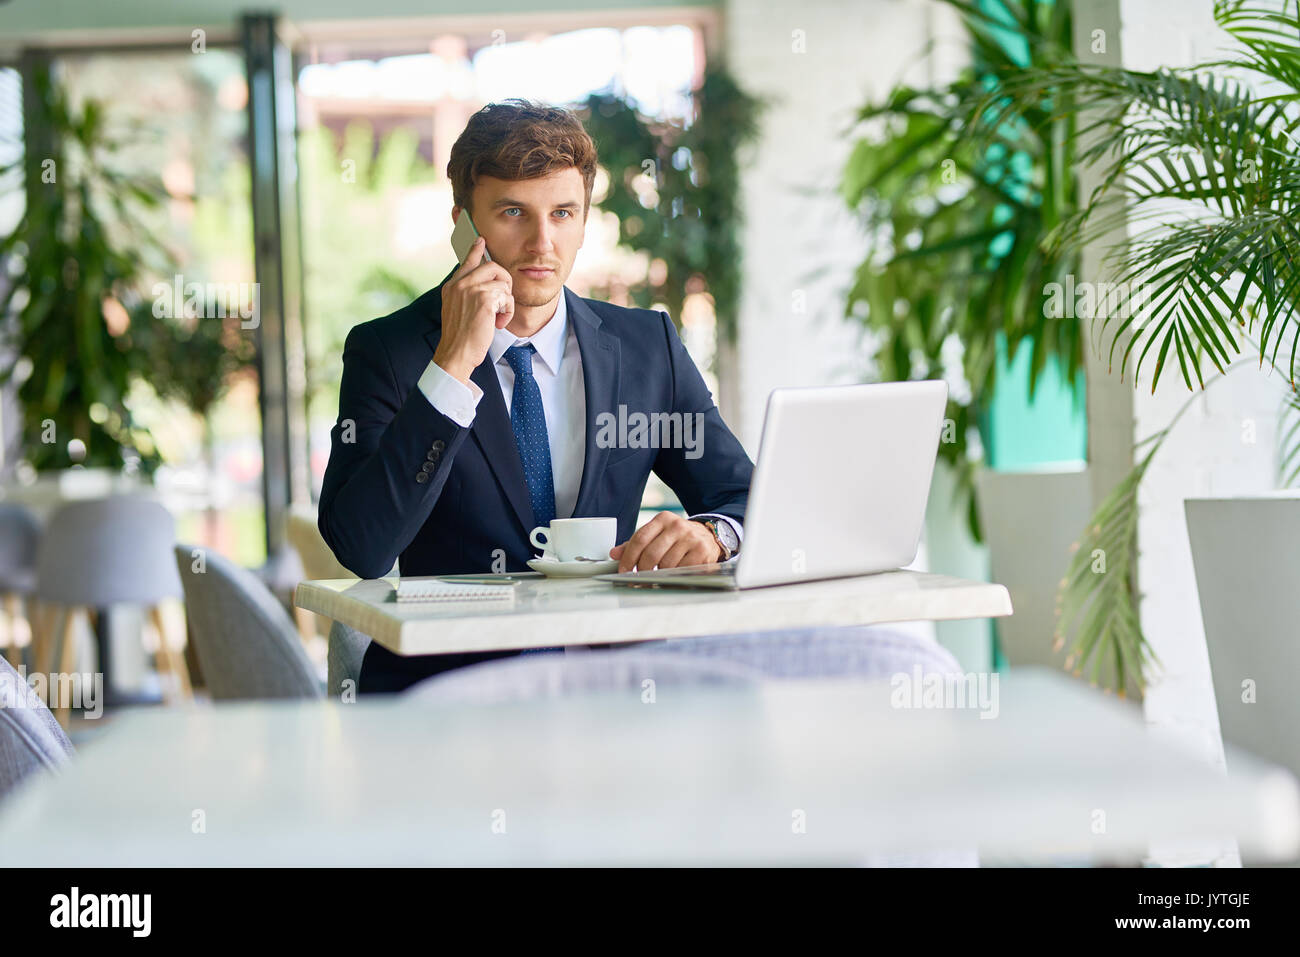 Contemporary Businessman Working in Cafe - Stock Image